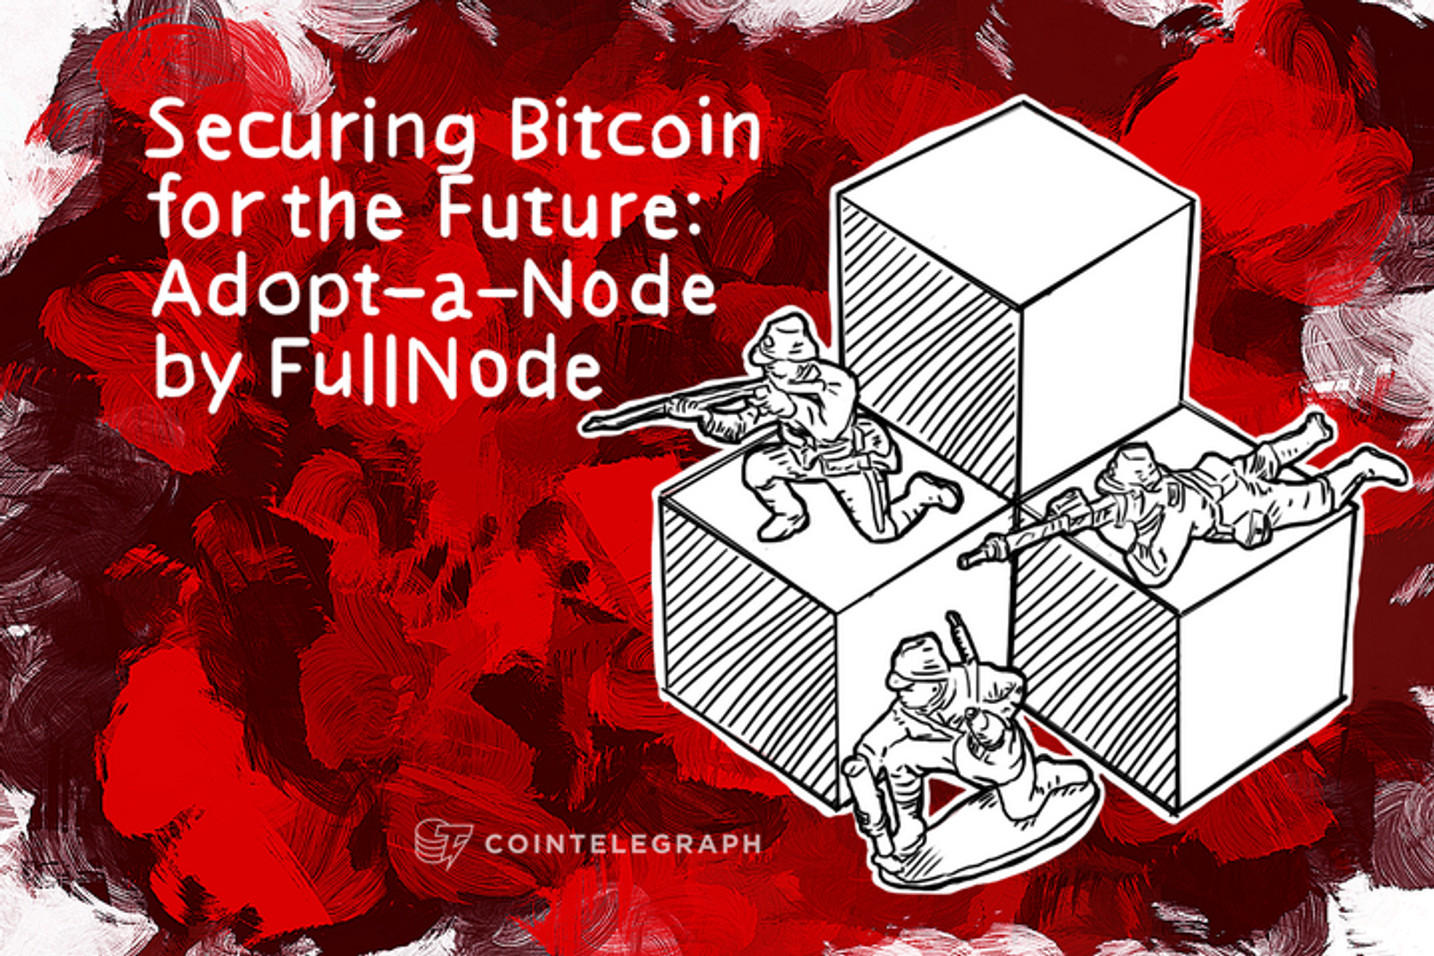 Securing Bitcoin for the Future: Adopt-a-Node by FullNode